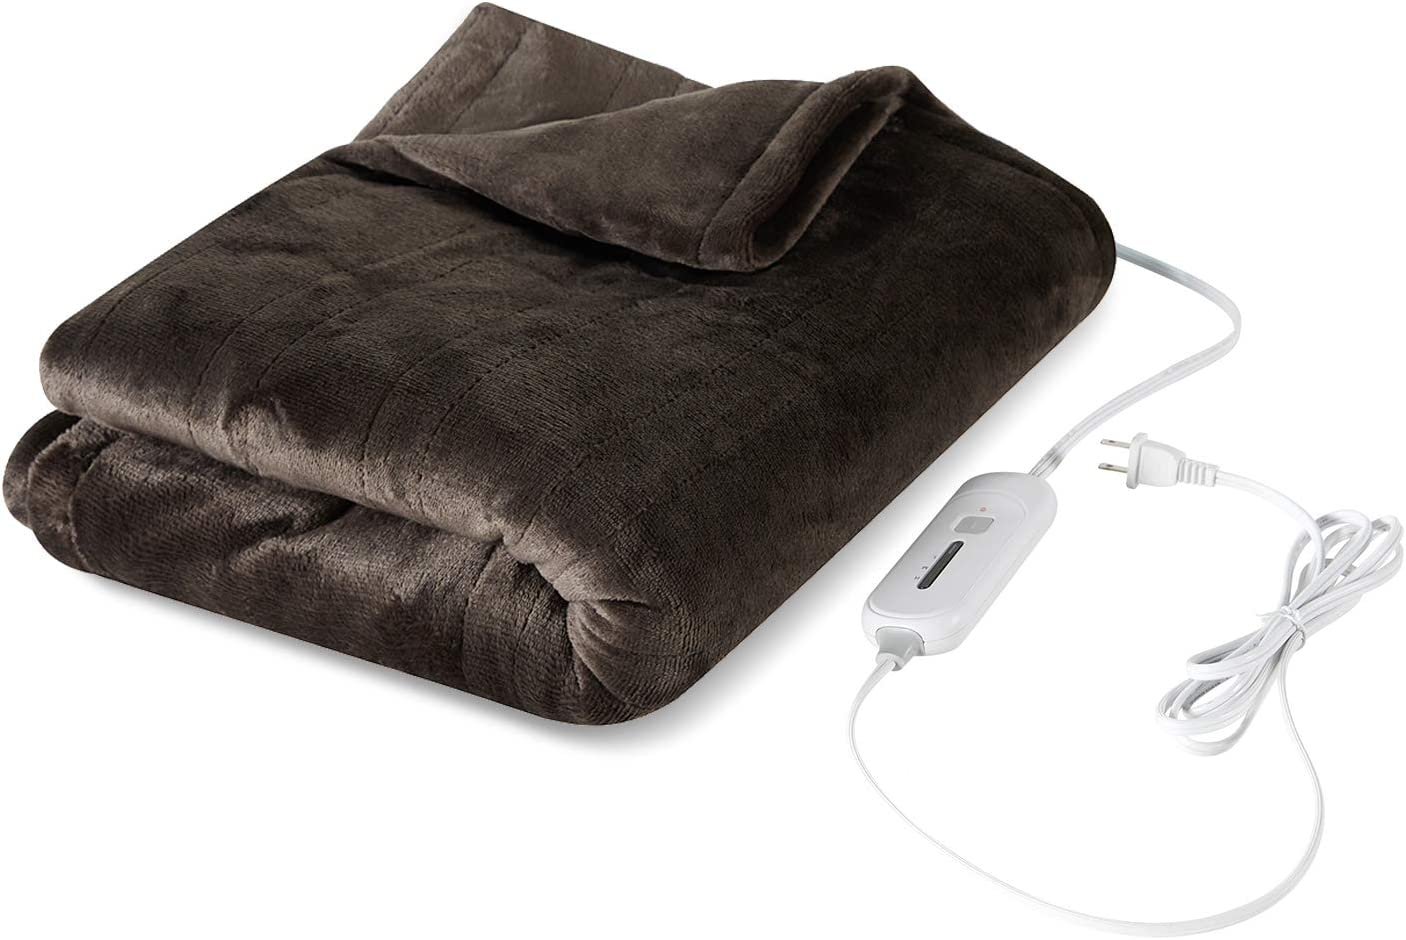 "Tefici Electric Heated Blanket Throw with 3 Heating Levels & 4 Hours Auto Off,Super Cozy Soft Heated Throw with Fast Heating and Machine Washable,Home Office Use,50"" x 60"" Dark Brown"